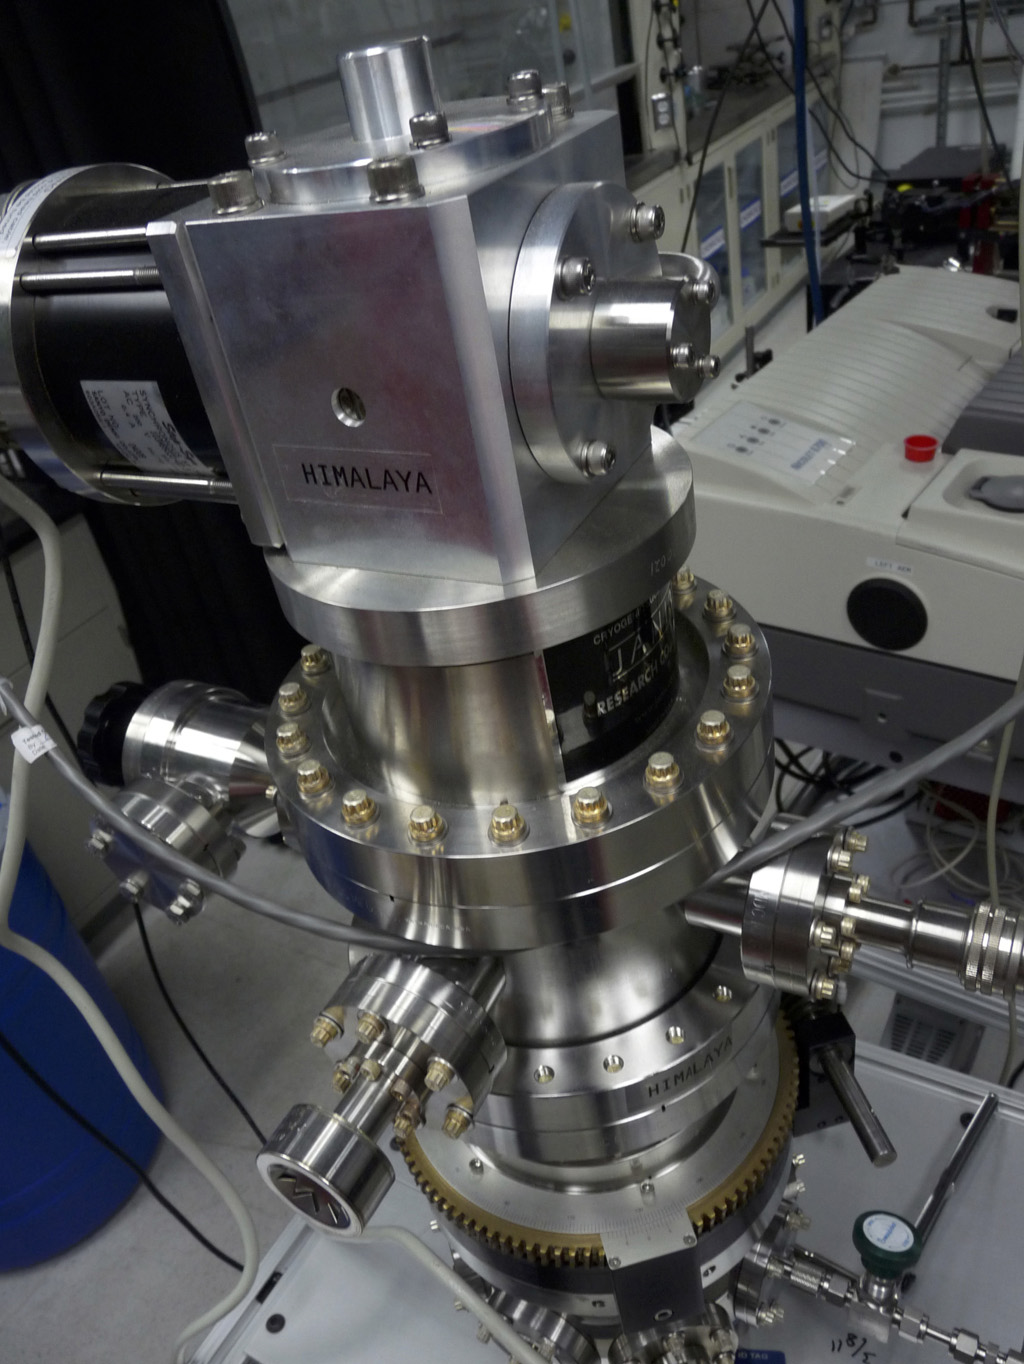 Researchers at NASA's Jet Propulsion Laboratory in Pasadena, California, use a cryostat instrument, nicknamed 'Himalaya,' to study the icy conditions under which comets form.